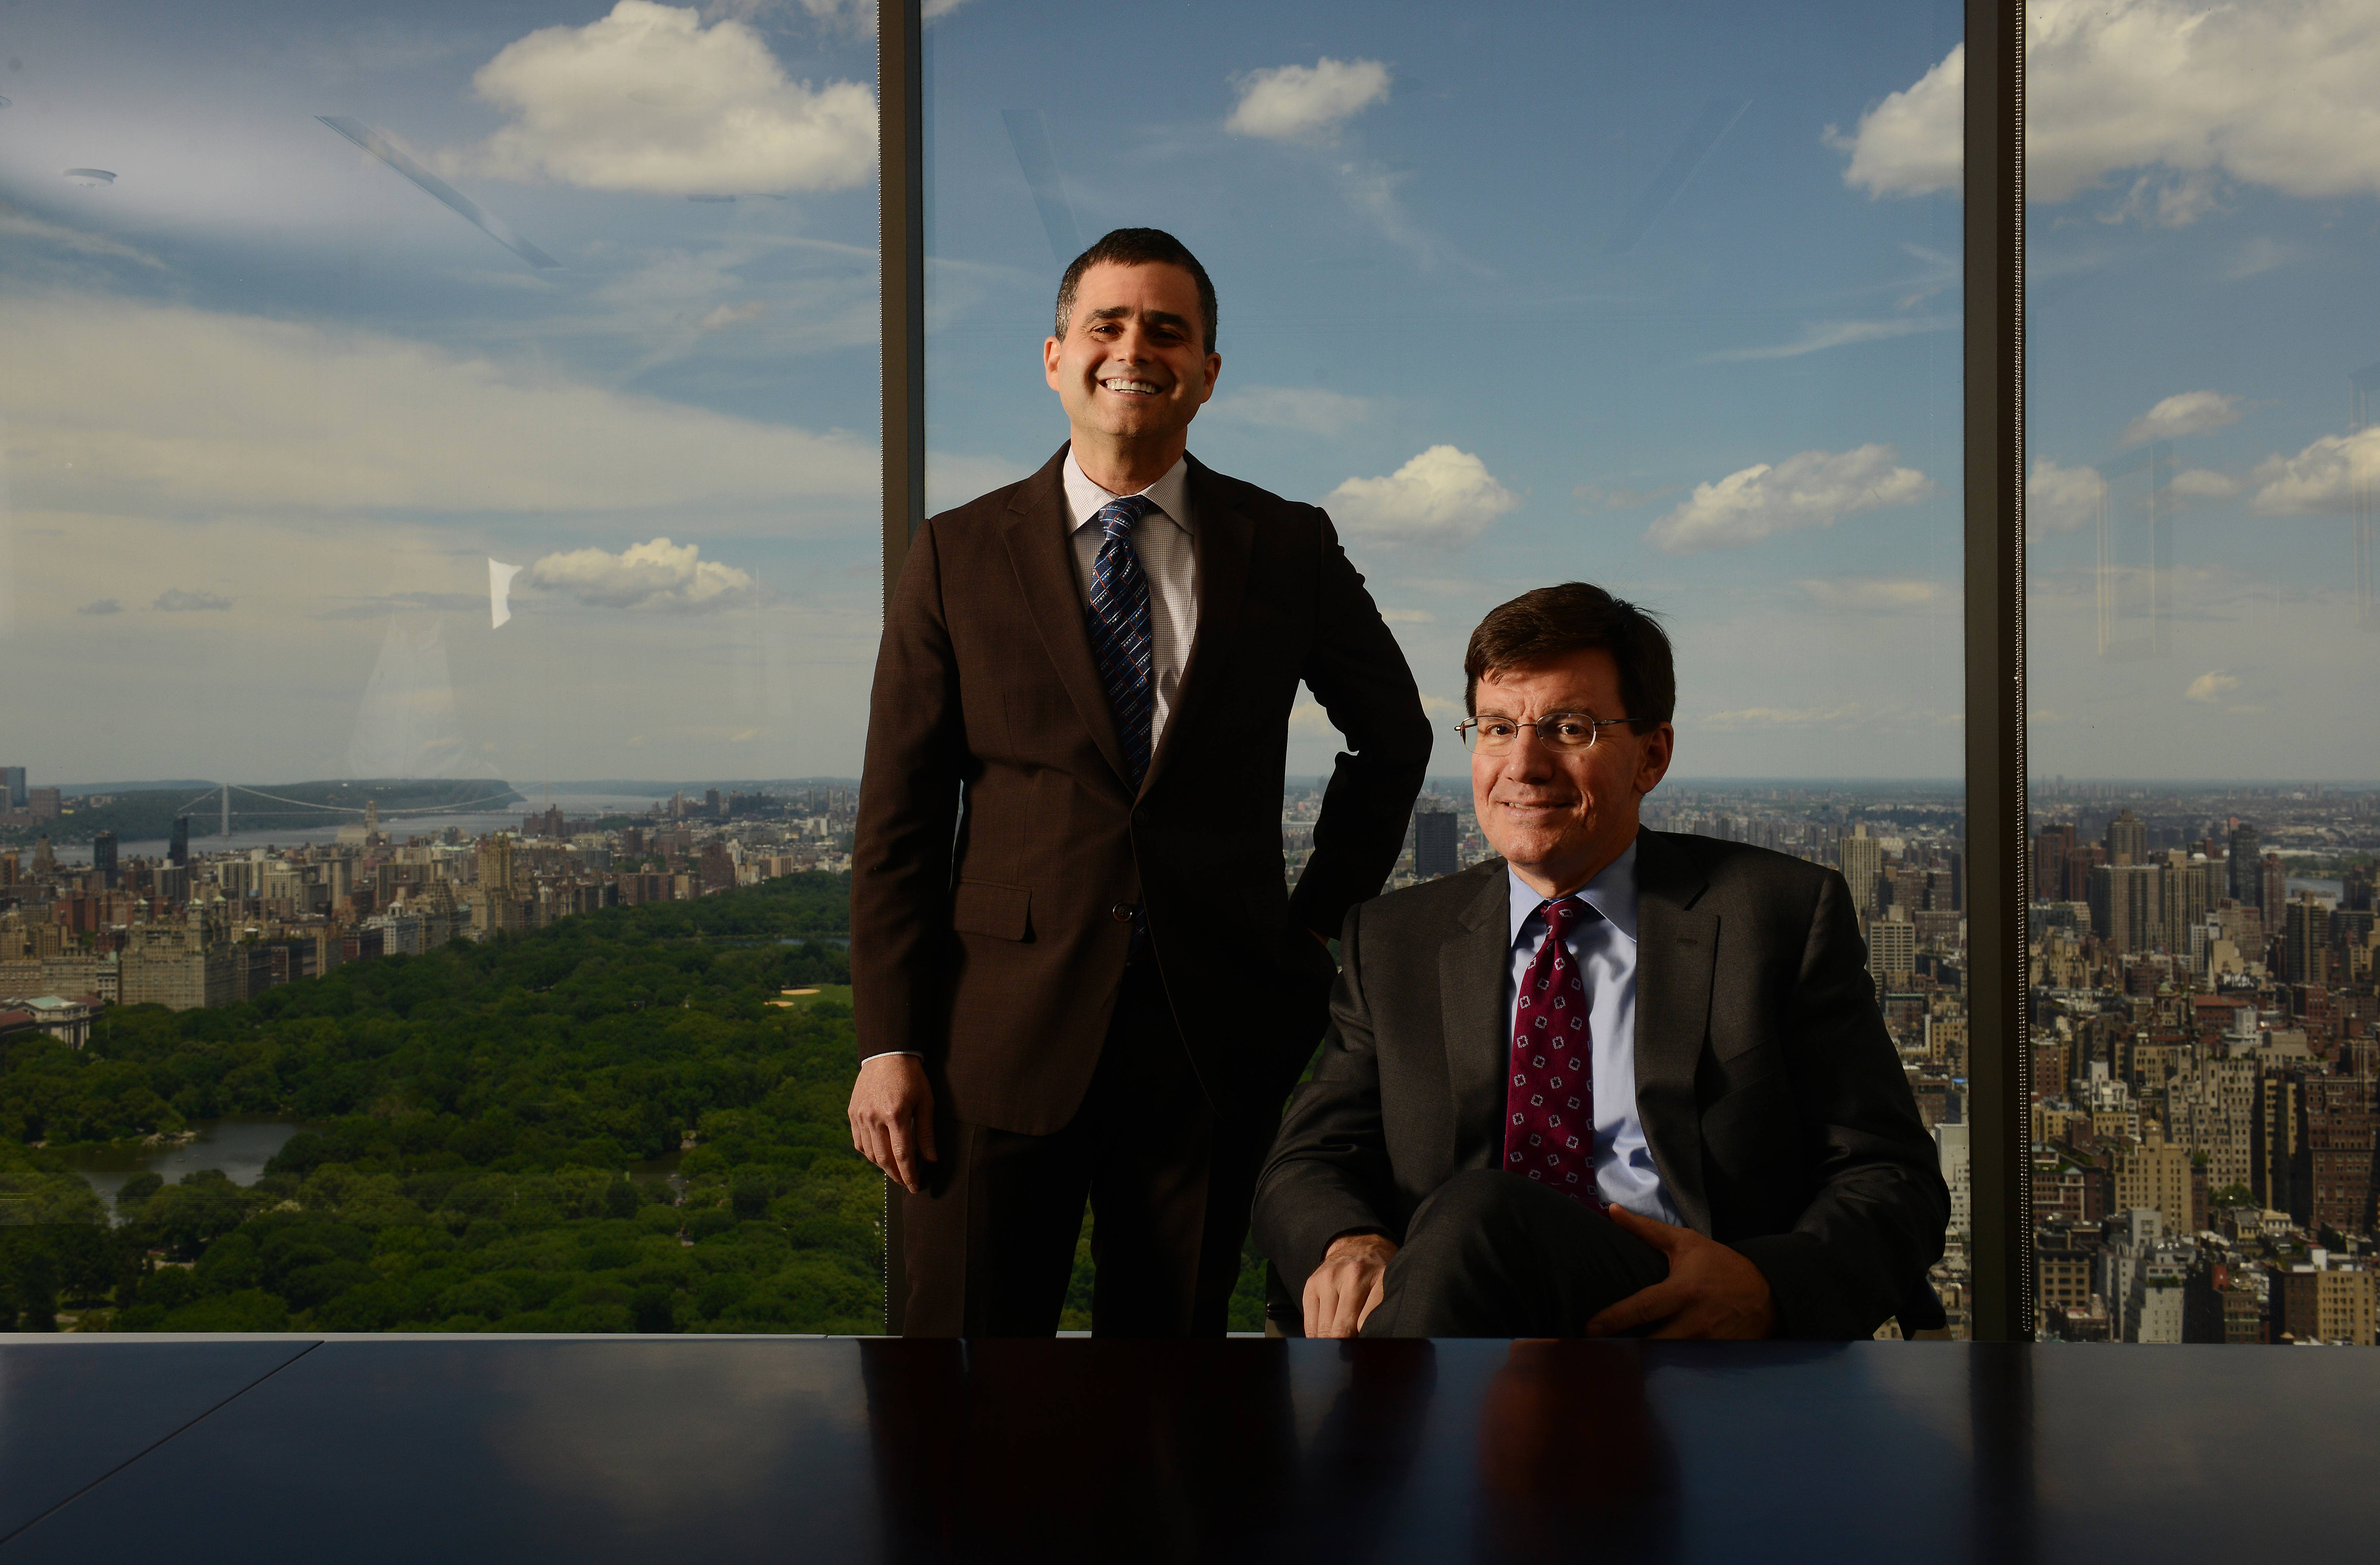 Ruane, Cunniff & Goldfarb's top-of-the-world offices overlook leafy Central Park. David Poppe, right, is CEO. Jonathan Brandt is the resident Berkshire Hathaway analyst and 25-year employee whose father worked at the firm. His father was an intimate of Warren Buffett's.